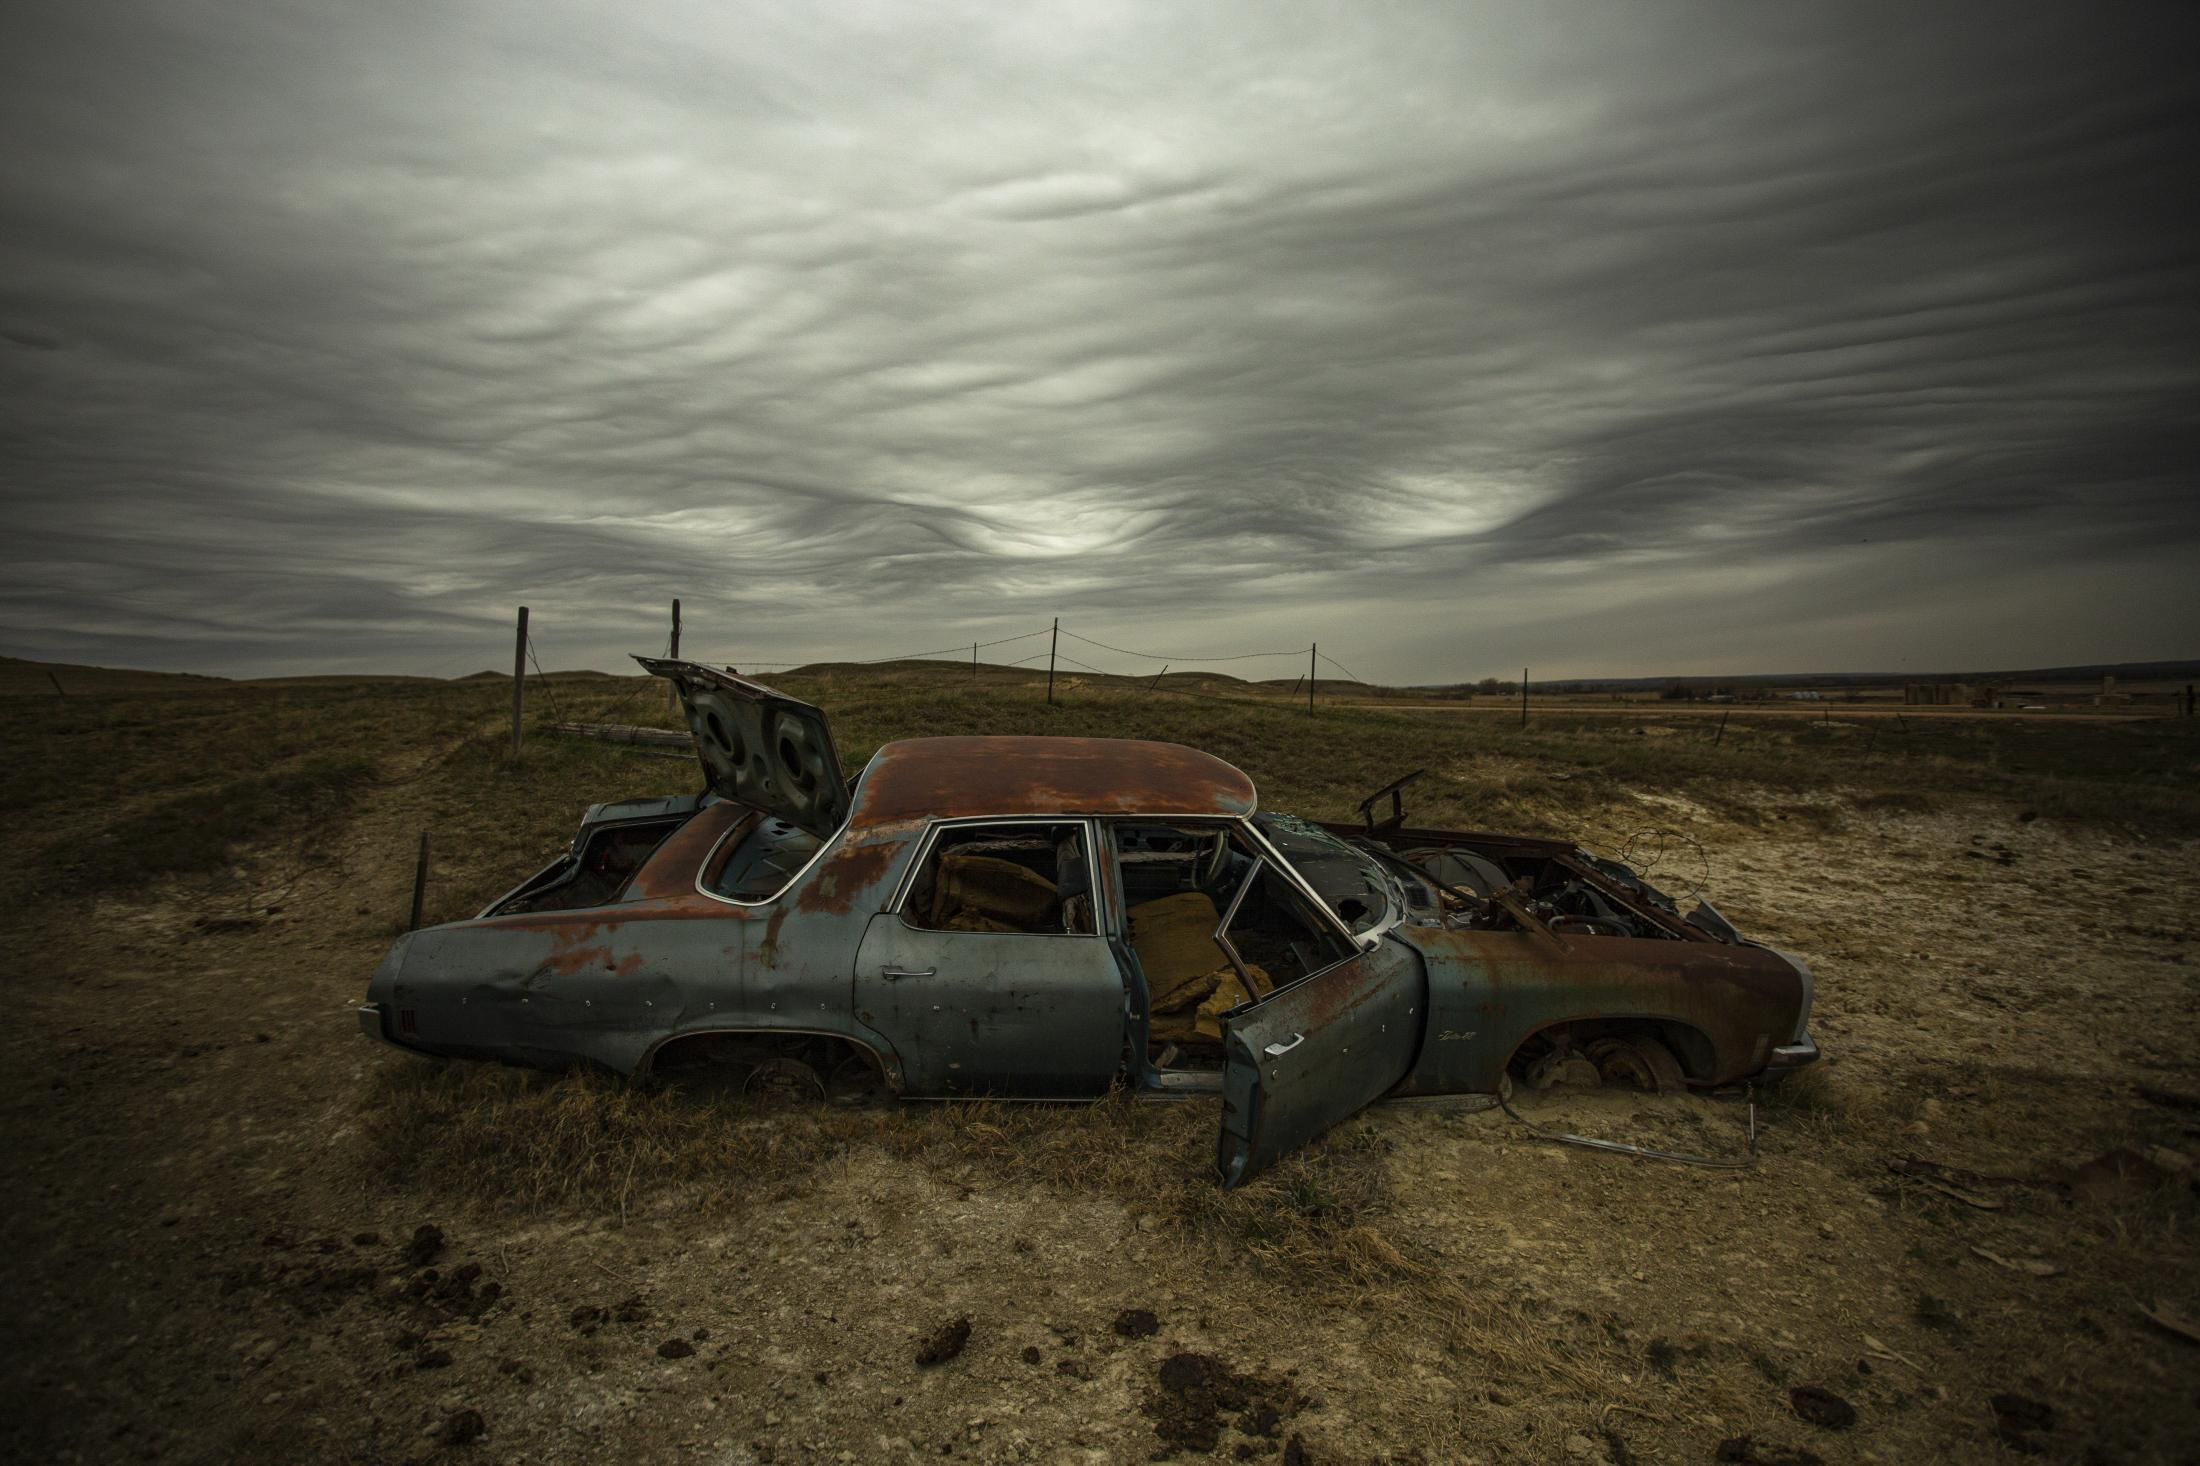 """Oil Boom Boys4/23/15North Dakota 20150423-4-23-15466469.JPG North Dakota has become the center of conversation for a more energy-efficient move for the United States. With the discovery of oil in """"The Bakken"""" Shale and hydraulic fracking, people from all over the country migrated to the rural towns of North Dakota. The rumors almost hard to believe that you could make six-figures as a roughneck attracted most of the new occupants. The majority of the oil field workers were male and would find themselves living in overpriced """"man camps"""" provided by oil companies. The struggles of depression, fatigue, and below zero weather would make or break these men's charter."""